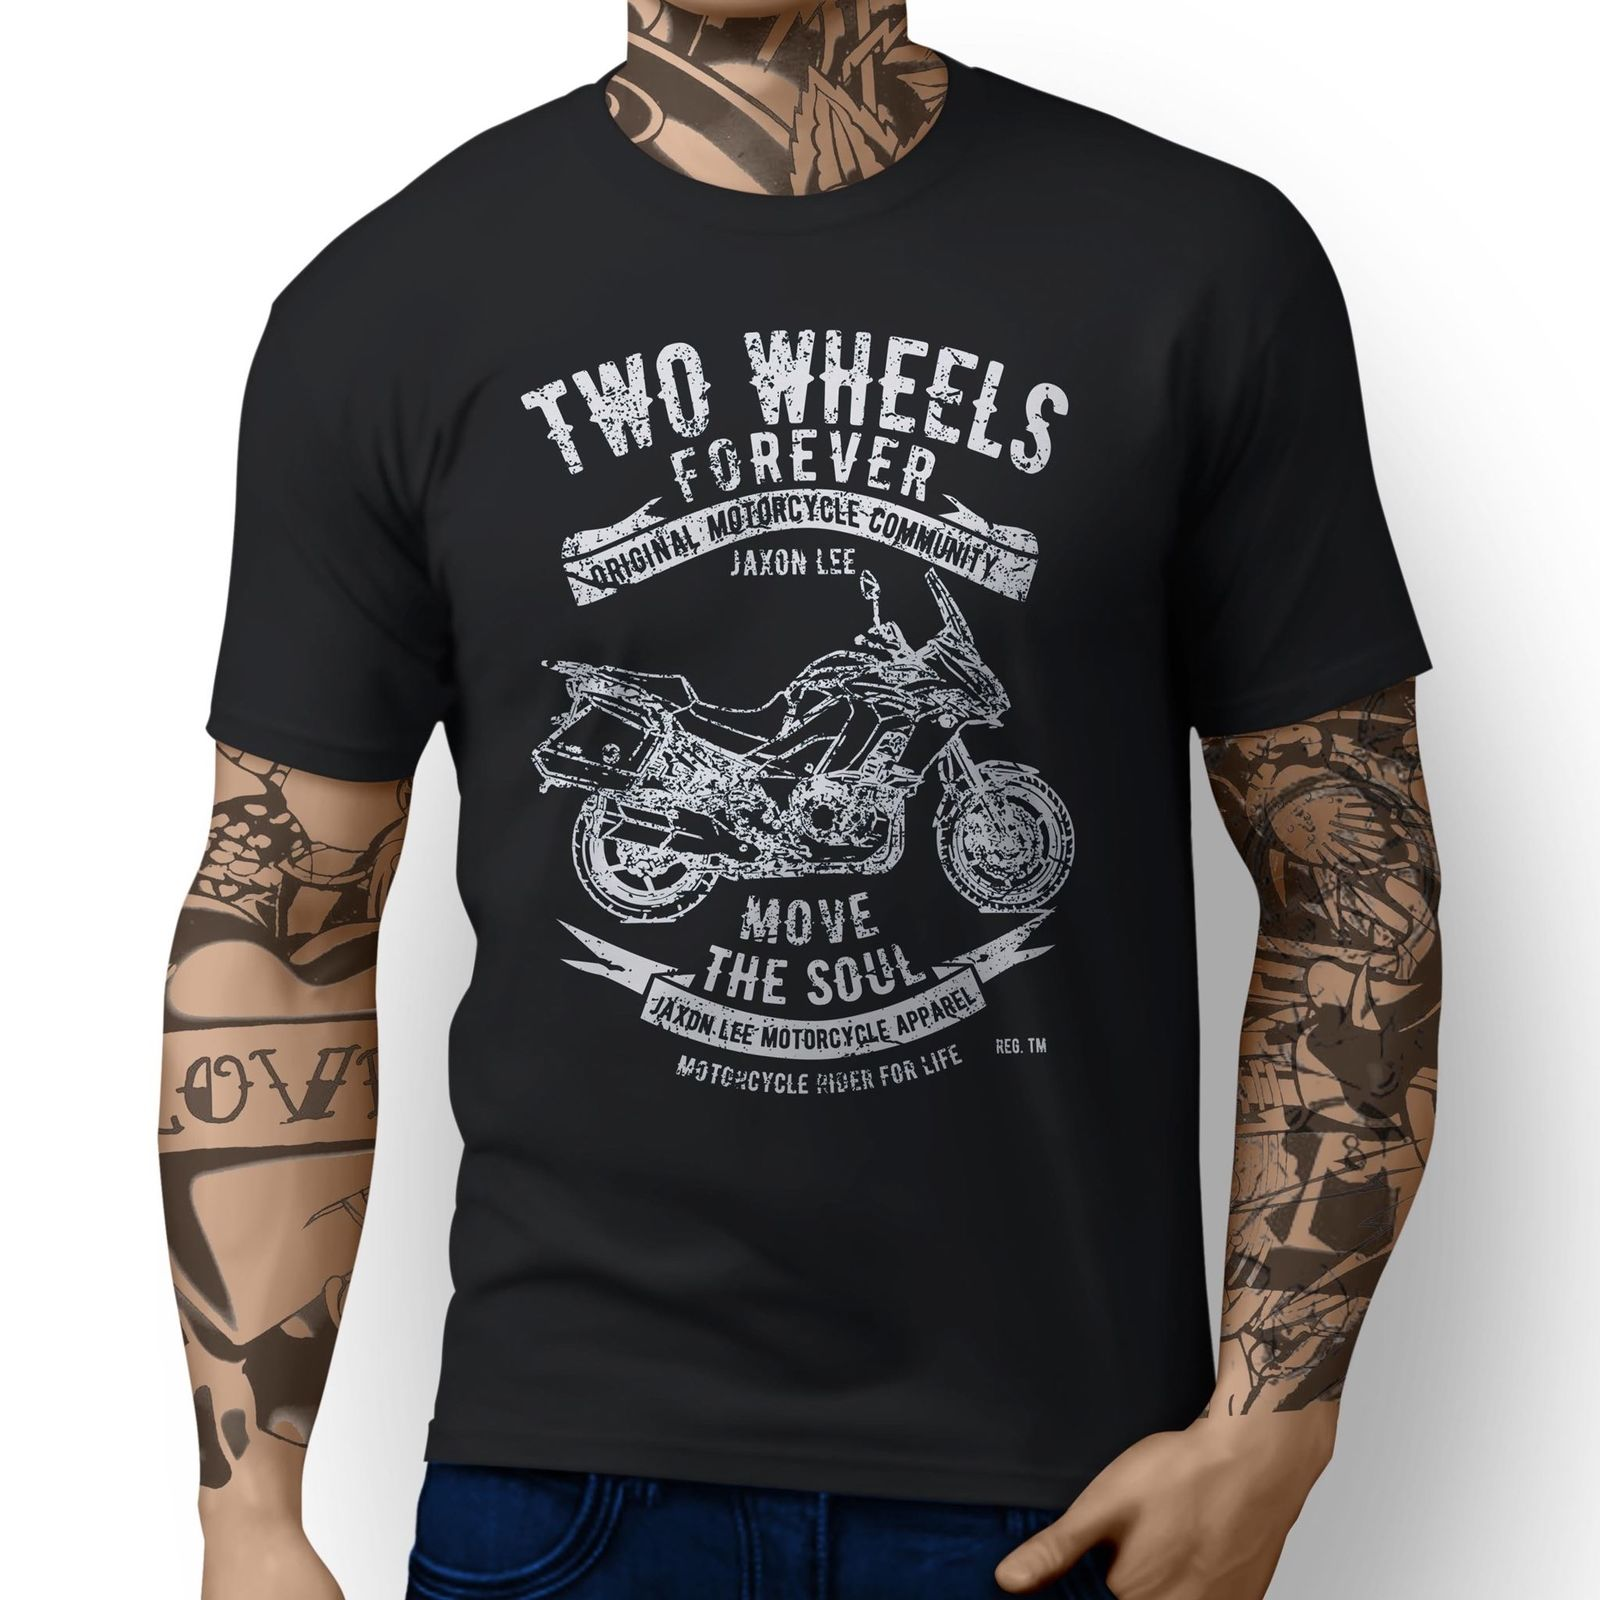 Us 11 53 10 Off 2019 New Summer Cool Japanese Classic Motorbike Versys 1000 Lt Inspired Motorcycle Art Design T Shirts Tee Shirt In T Shirts From